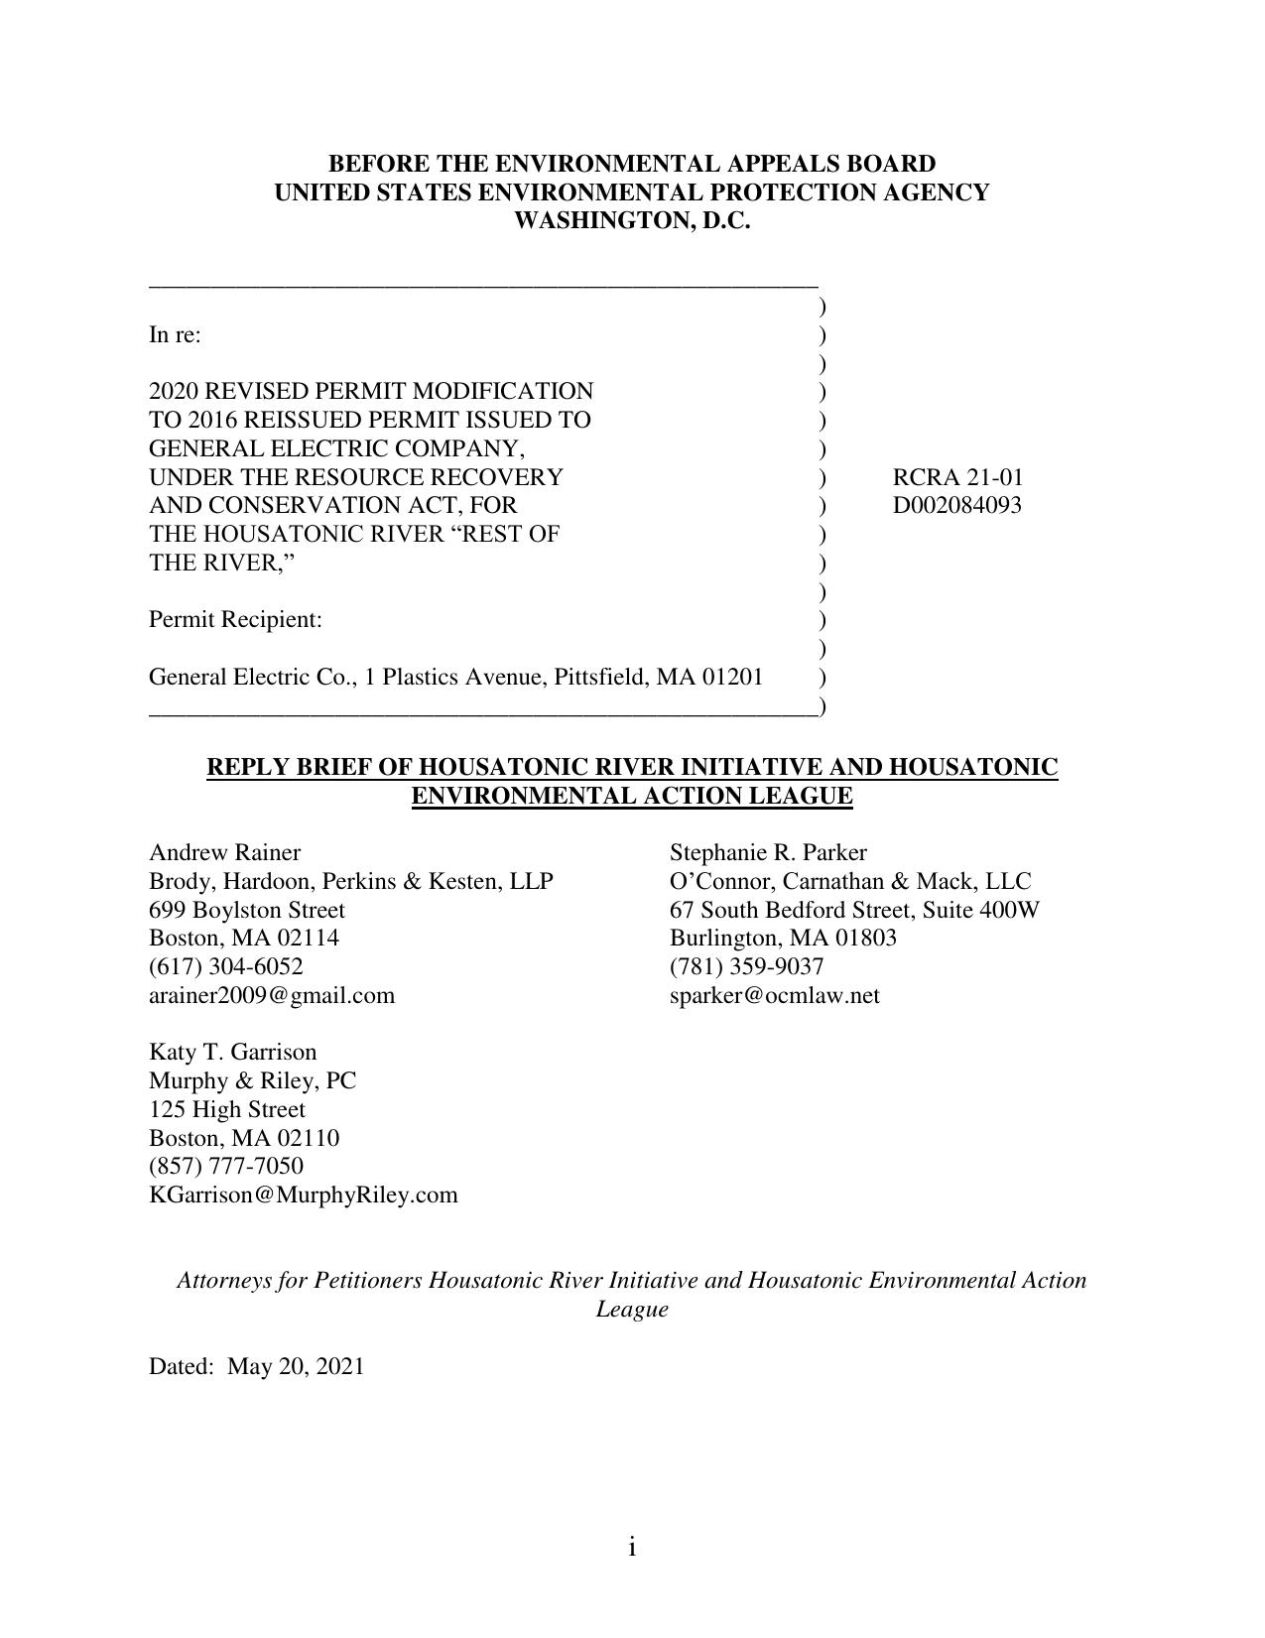 HRI and HEAL reply brief